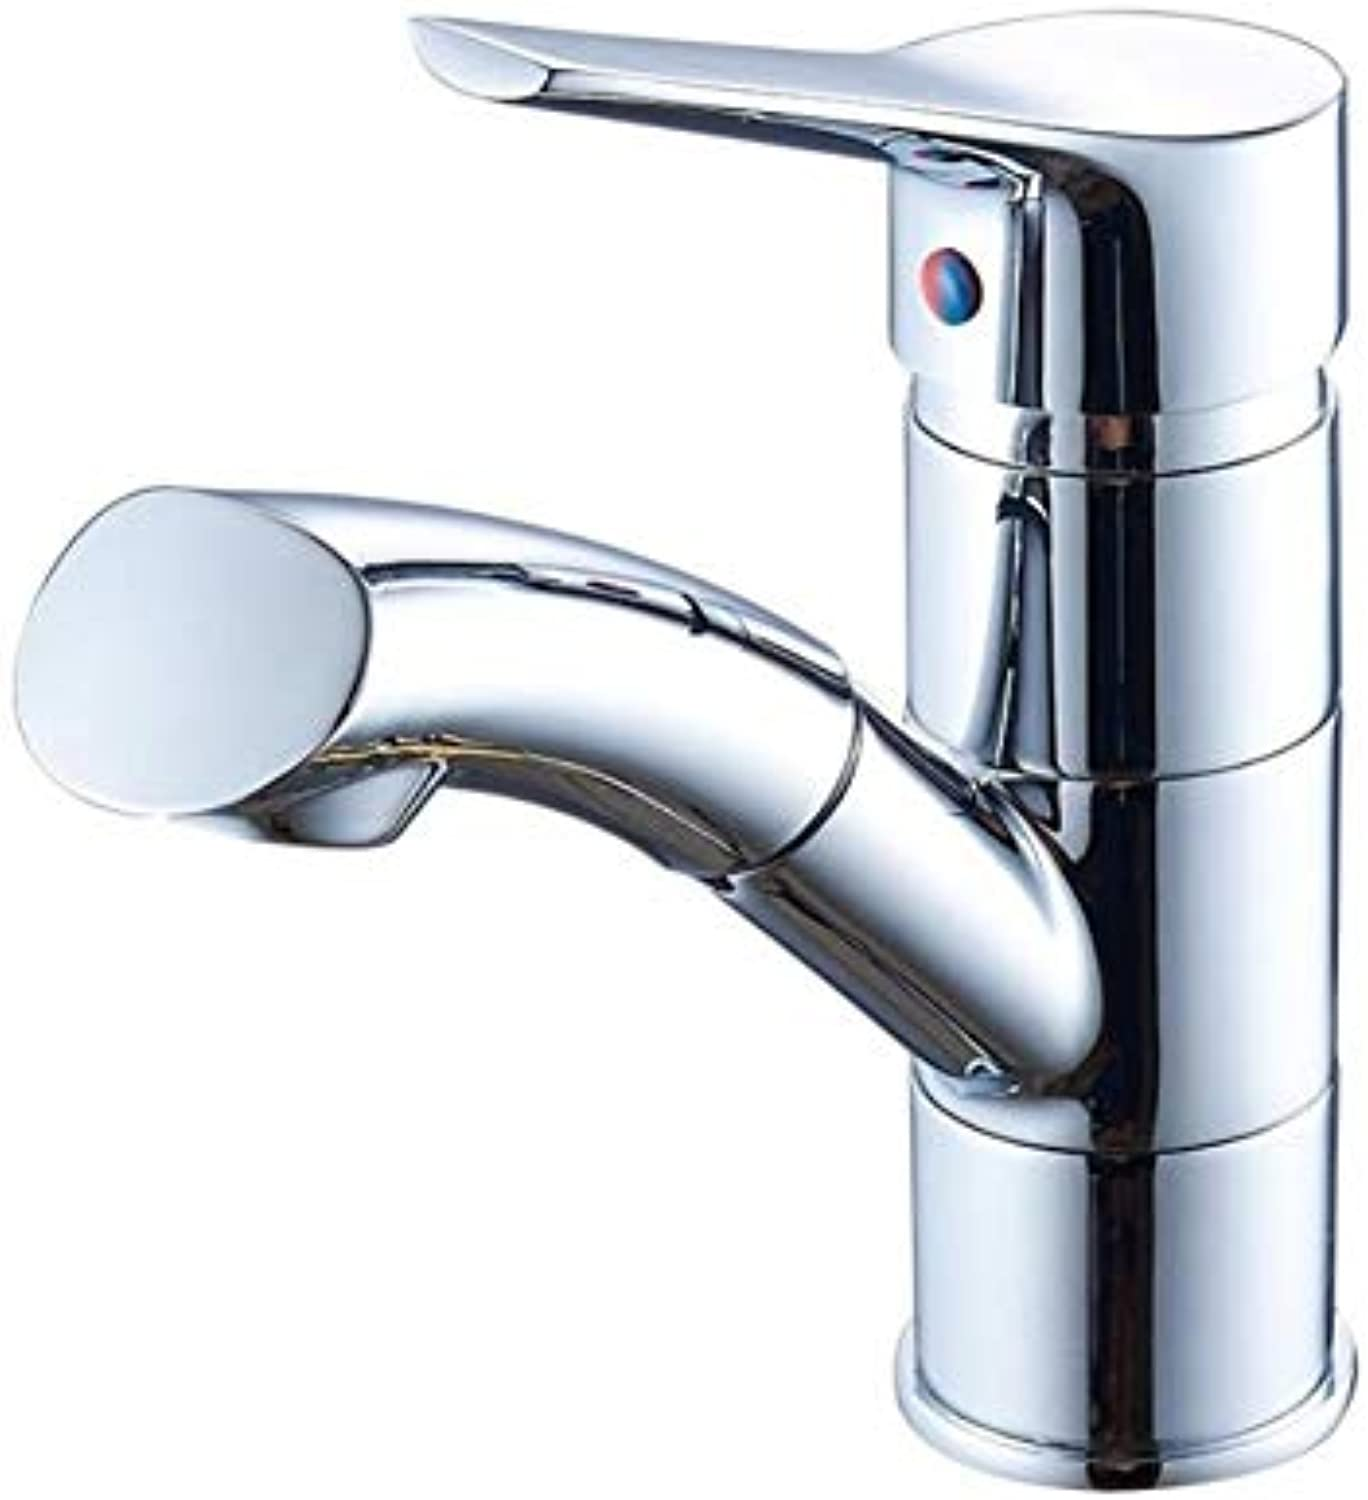 Bathroom Sink Basin Lever Mixer Tap Copper Basin Pull Faucet Hot and Cold Kitchen Sink Faucet Can Be redated